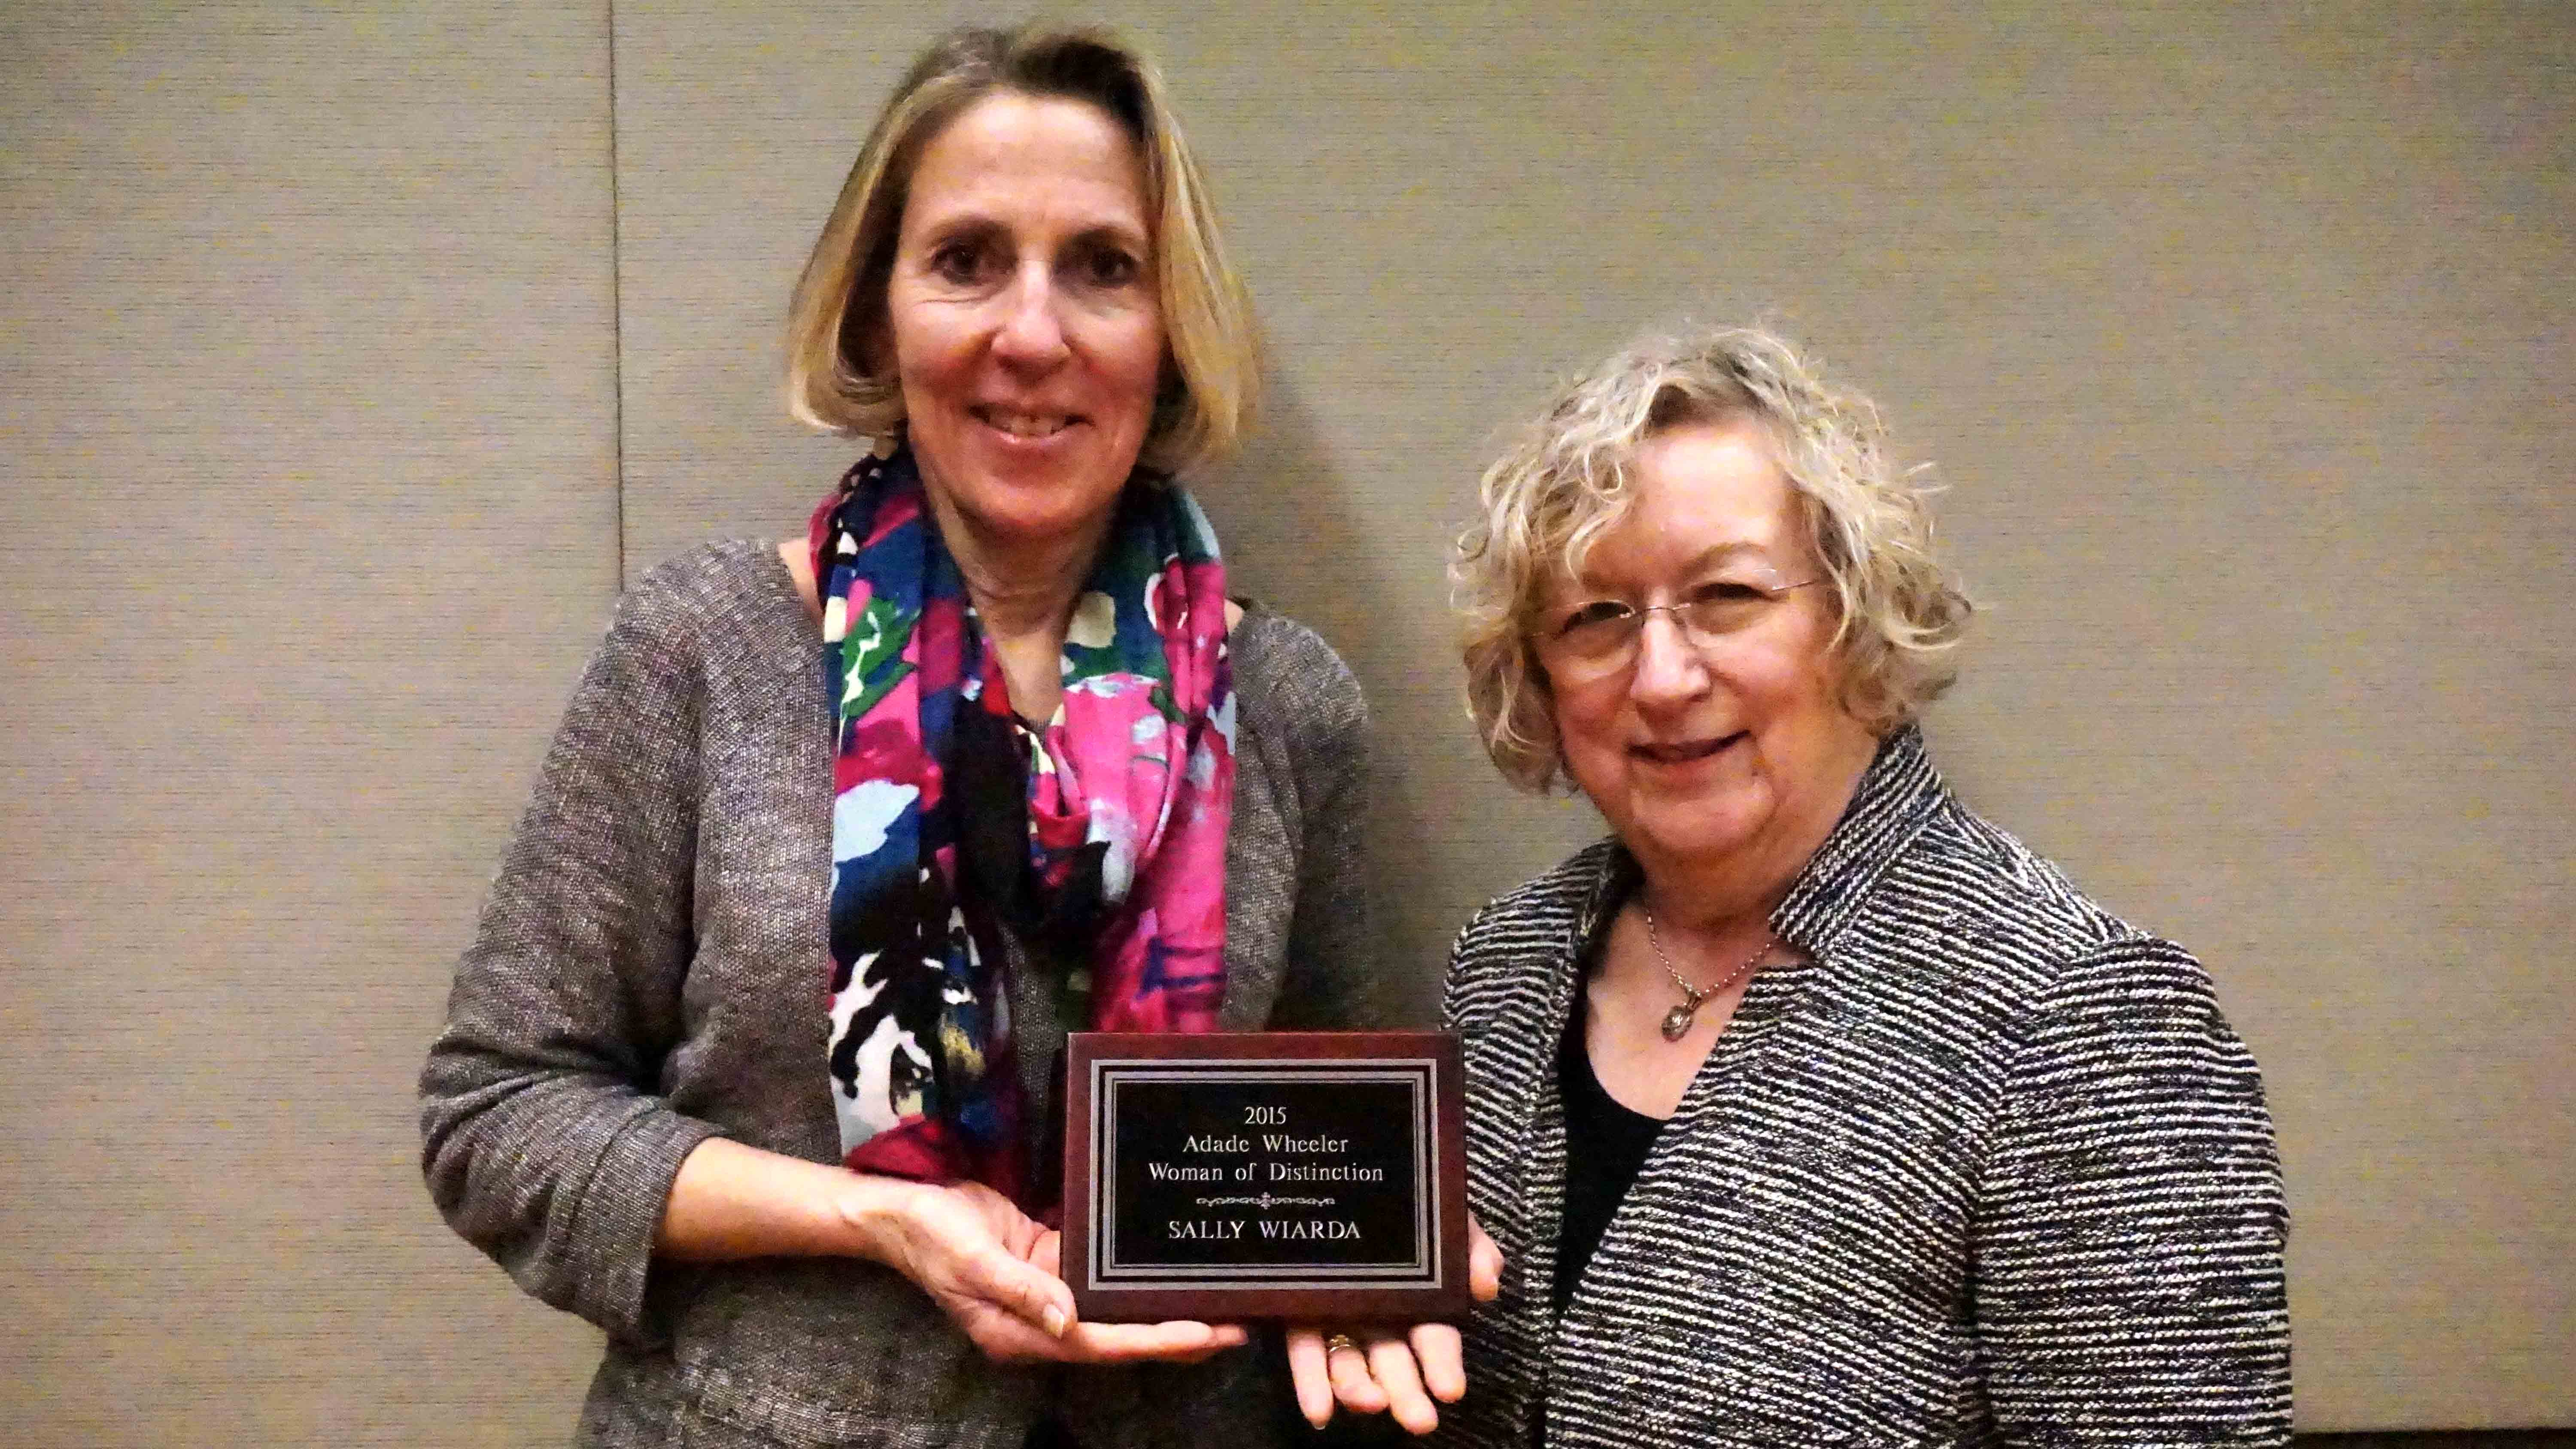 Sally Wiarda, left, is pictured with her award and her nominator, Charlotte Mushow. Wiard was named the Woman of Distinction by COD's Studies Committee.